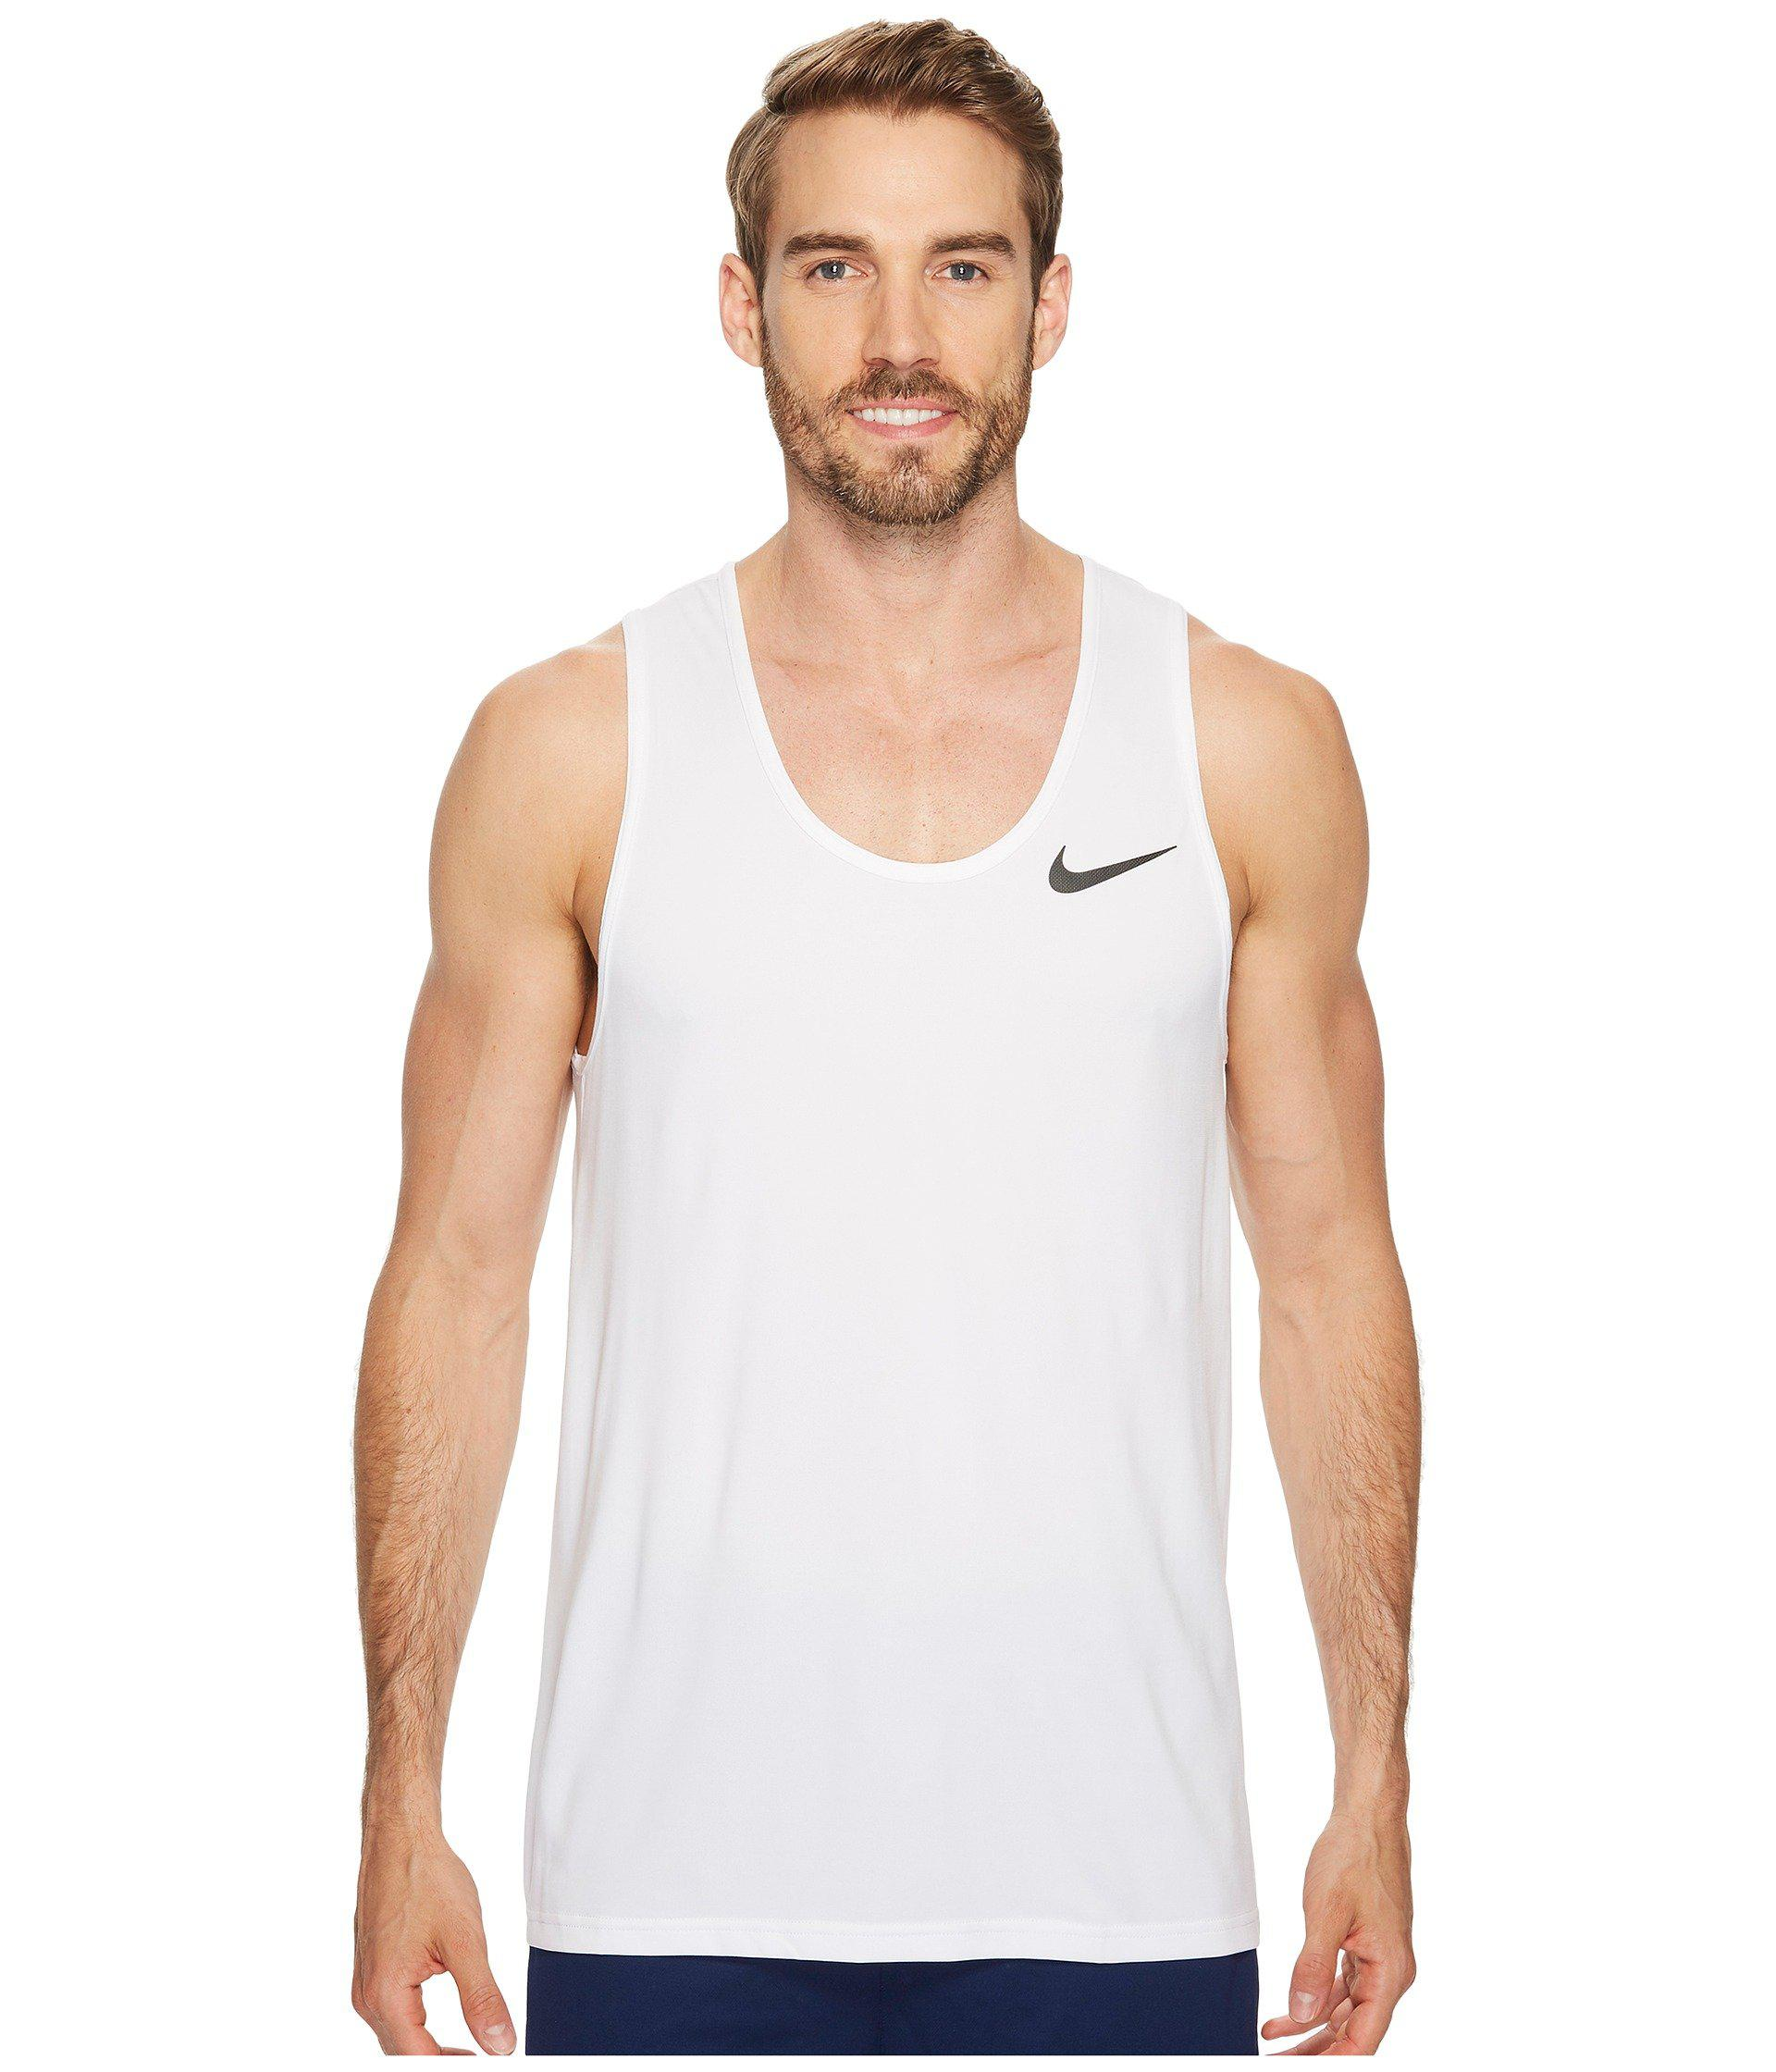 cc09406715f24 Lyst - Nike Breathe Training Tank in White for Men - Save 32%